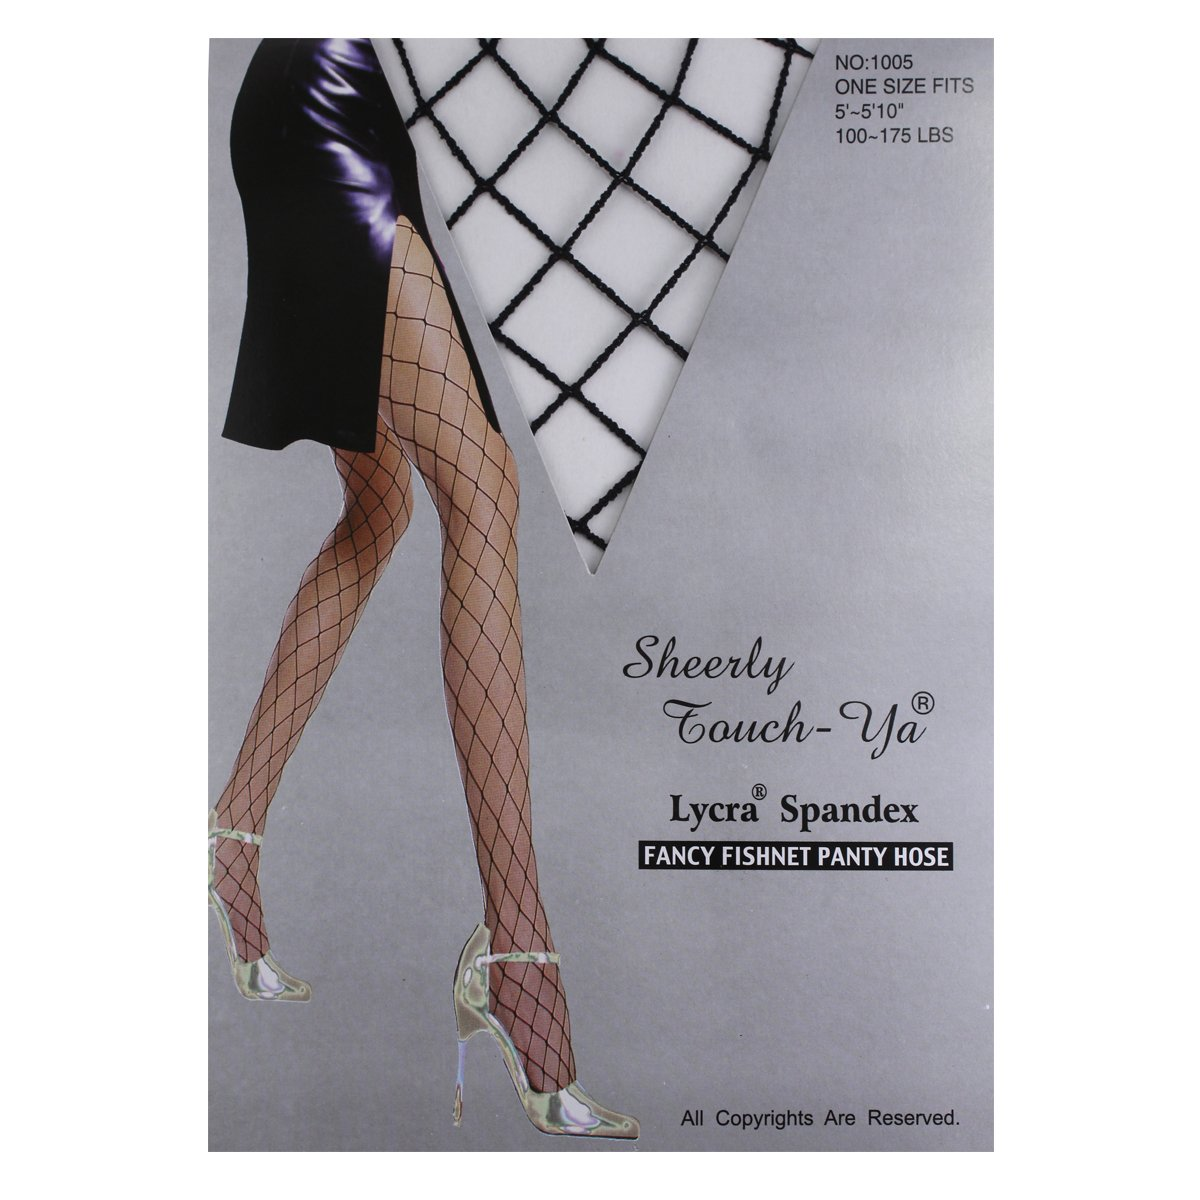 426ecc9e99b Big Cross Fishnet Tights Fancy Spandex One Size Fits Mesh Stockings Hollow  Out Pantyhose at Amazon Women s Clothing store